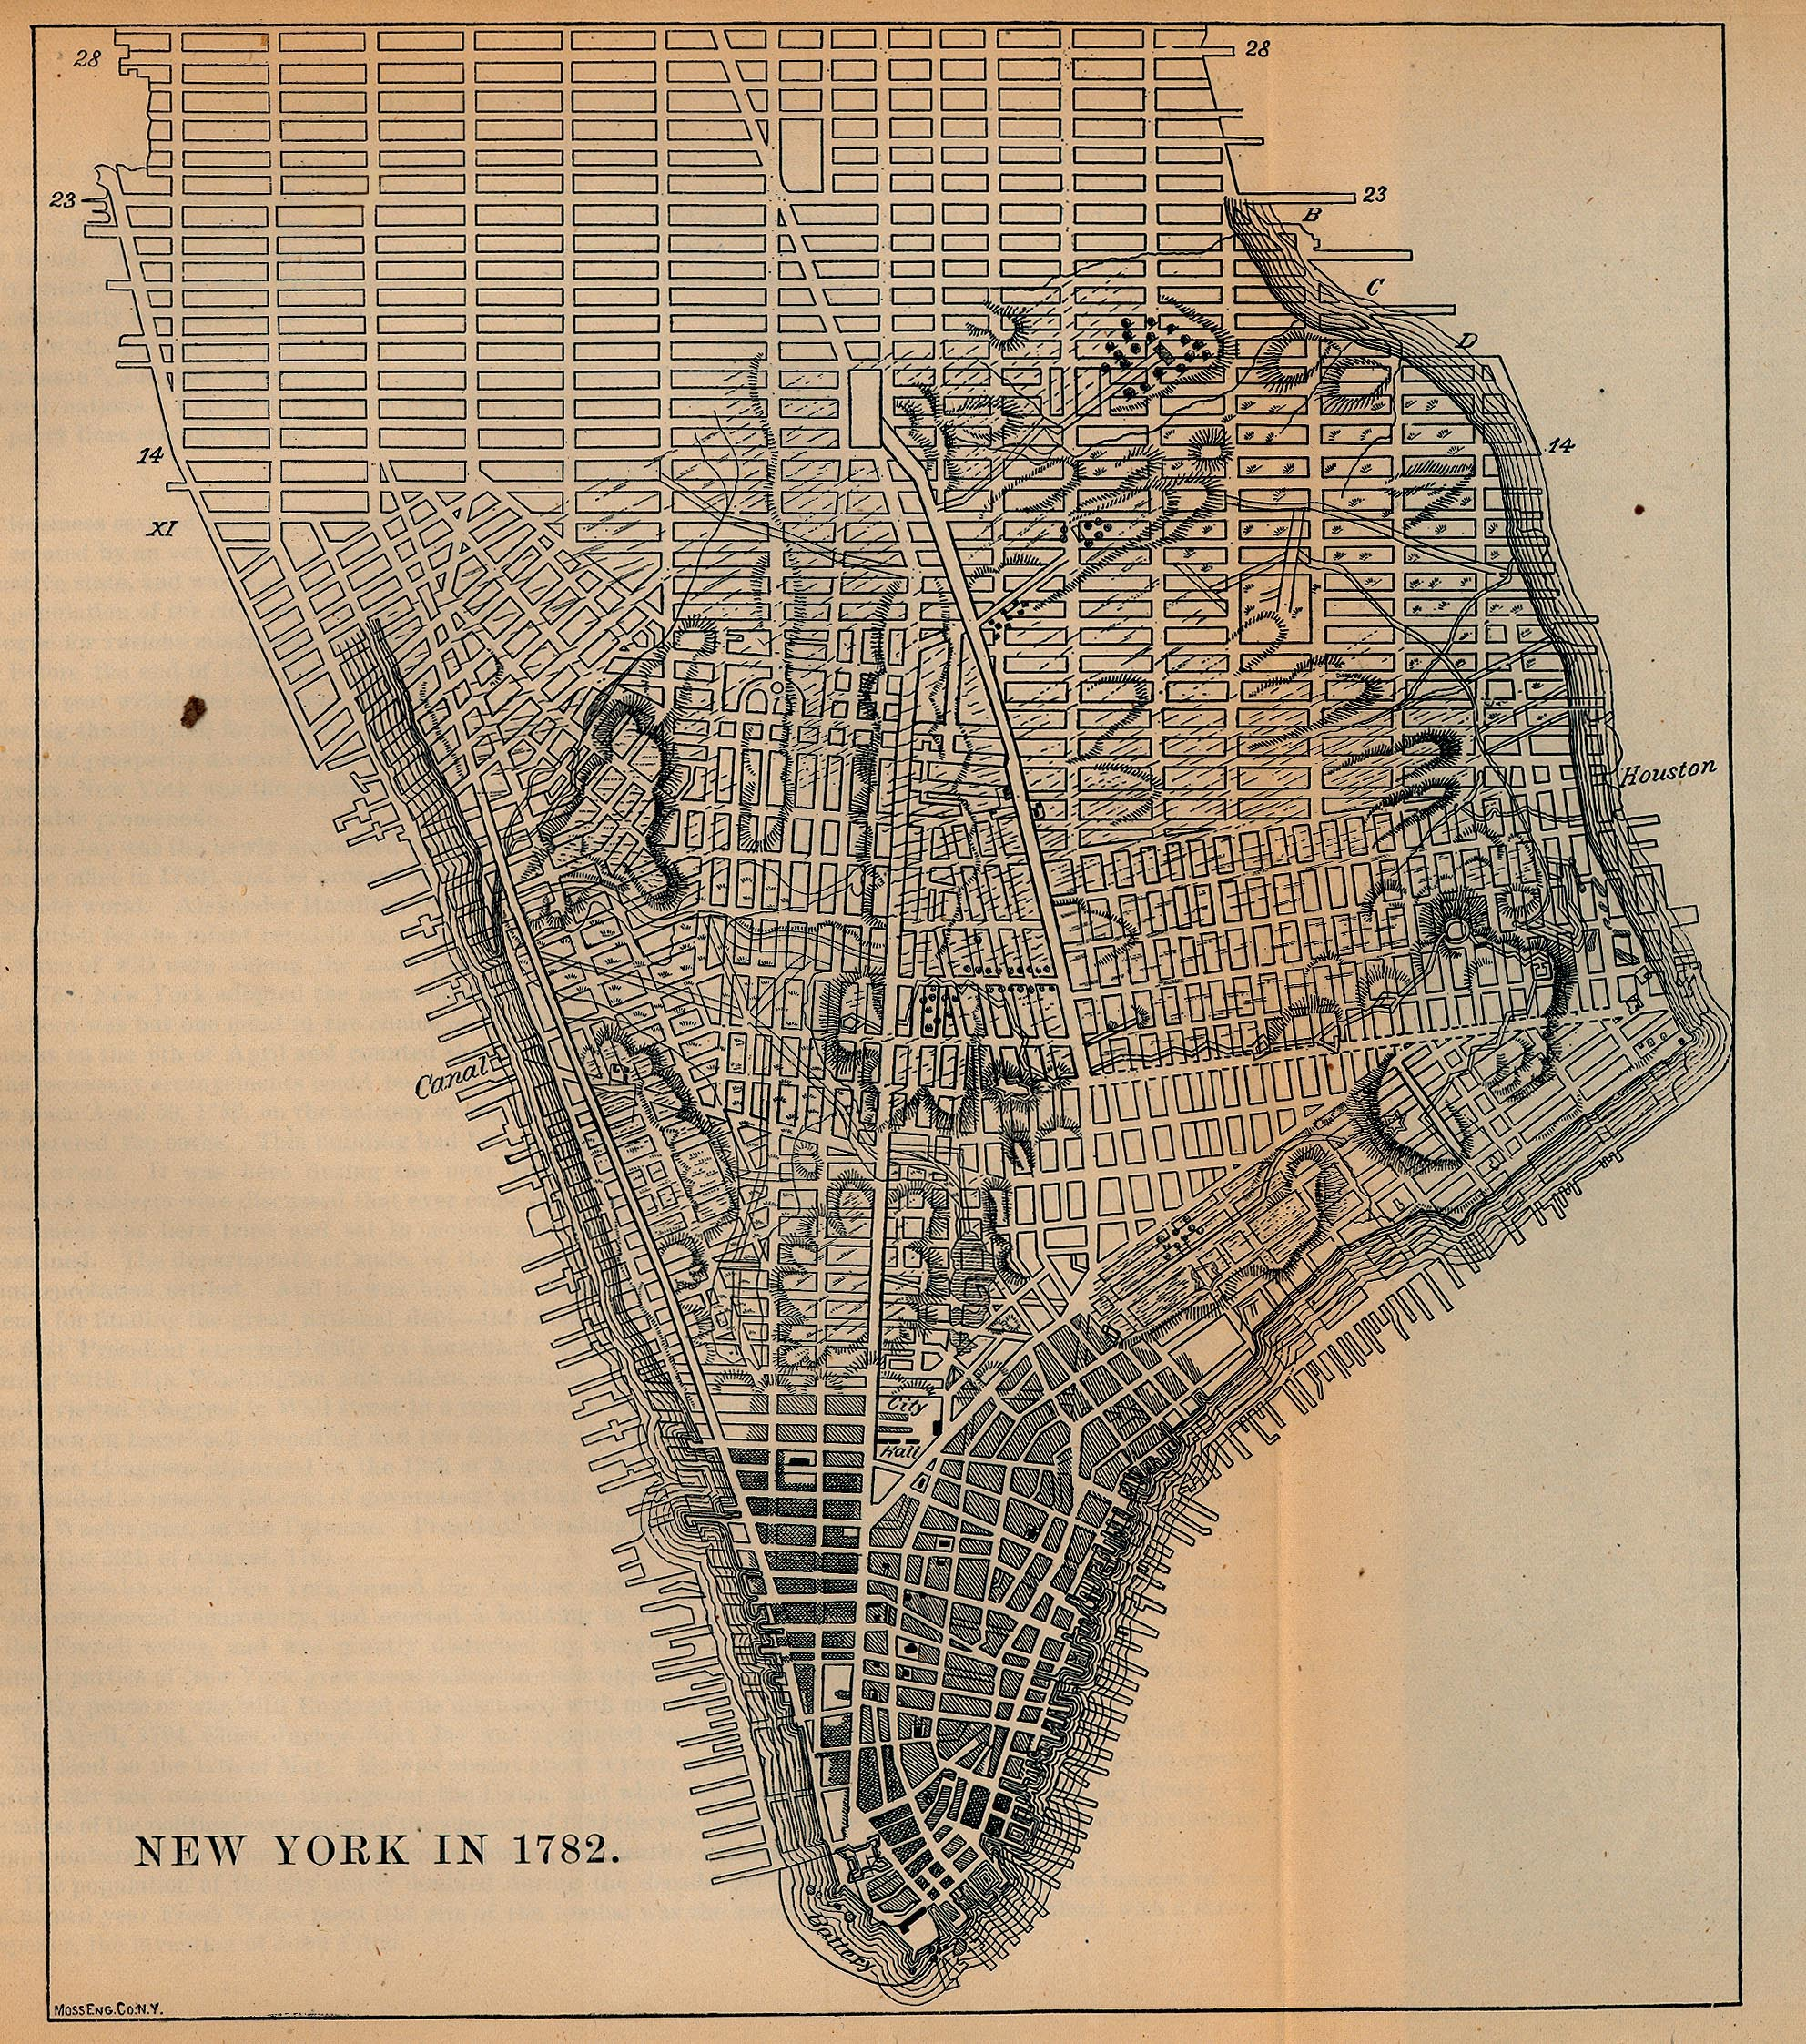 570K New York City 1782 [Map